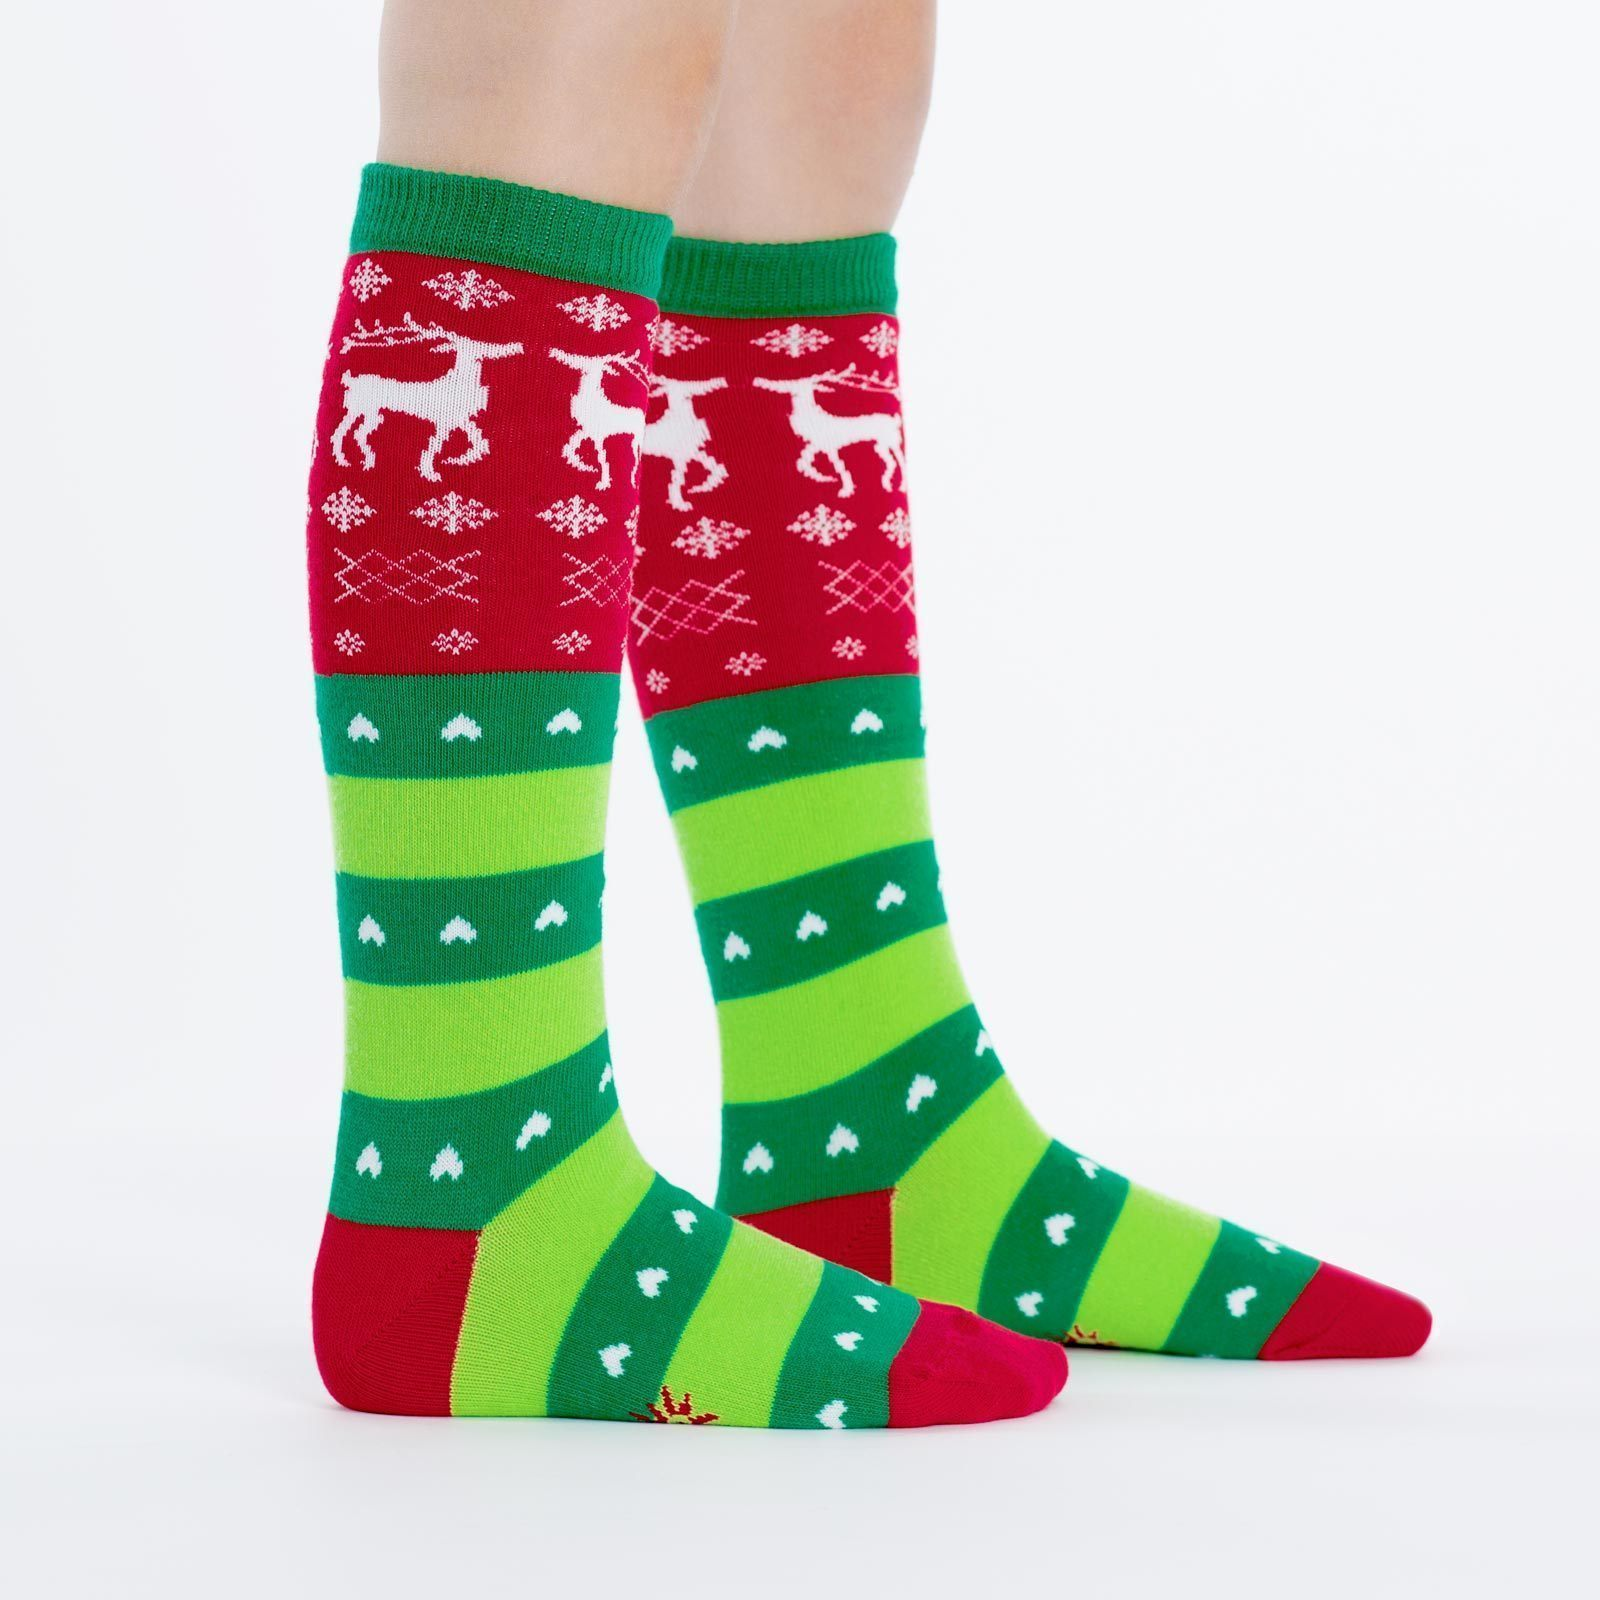 Sock It To Me - Youth Tacky Holiday Sweater Knee High Socks | Kids' - Knock Your Socks Off